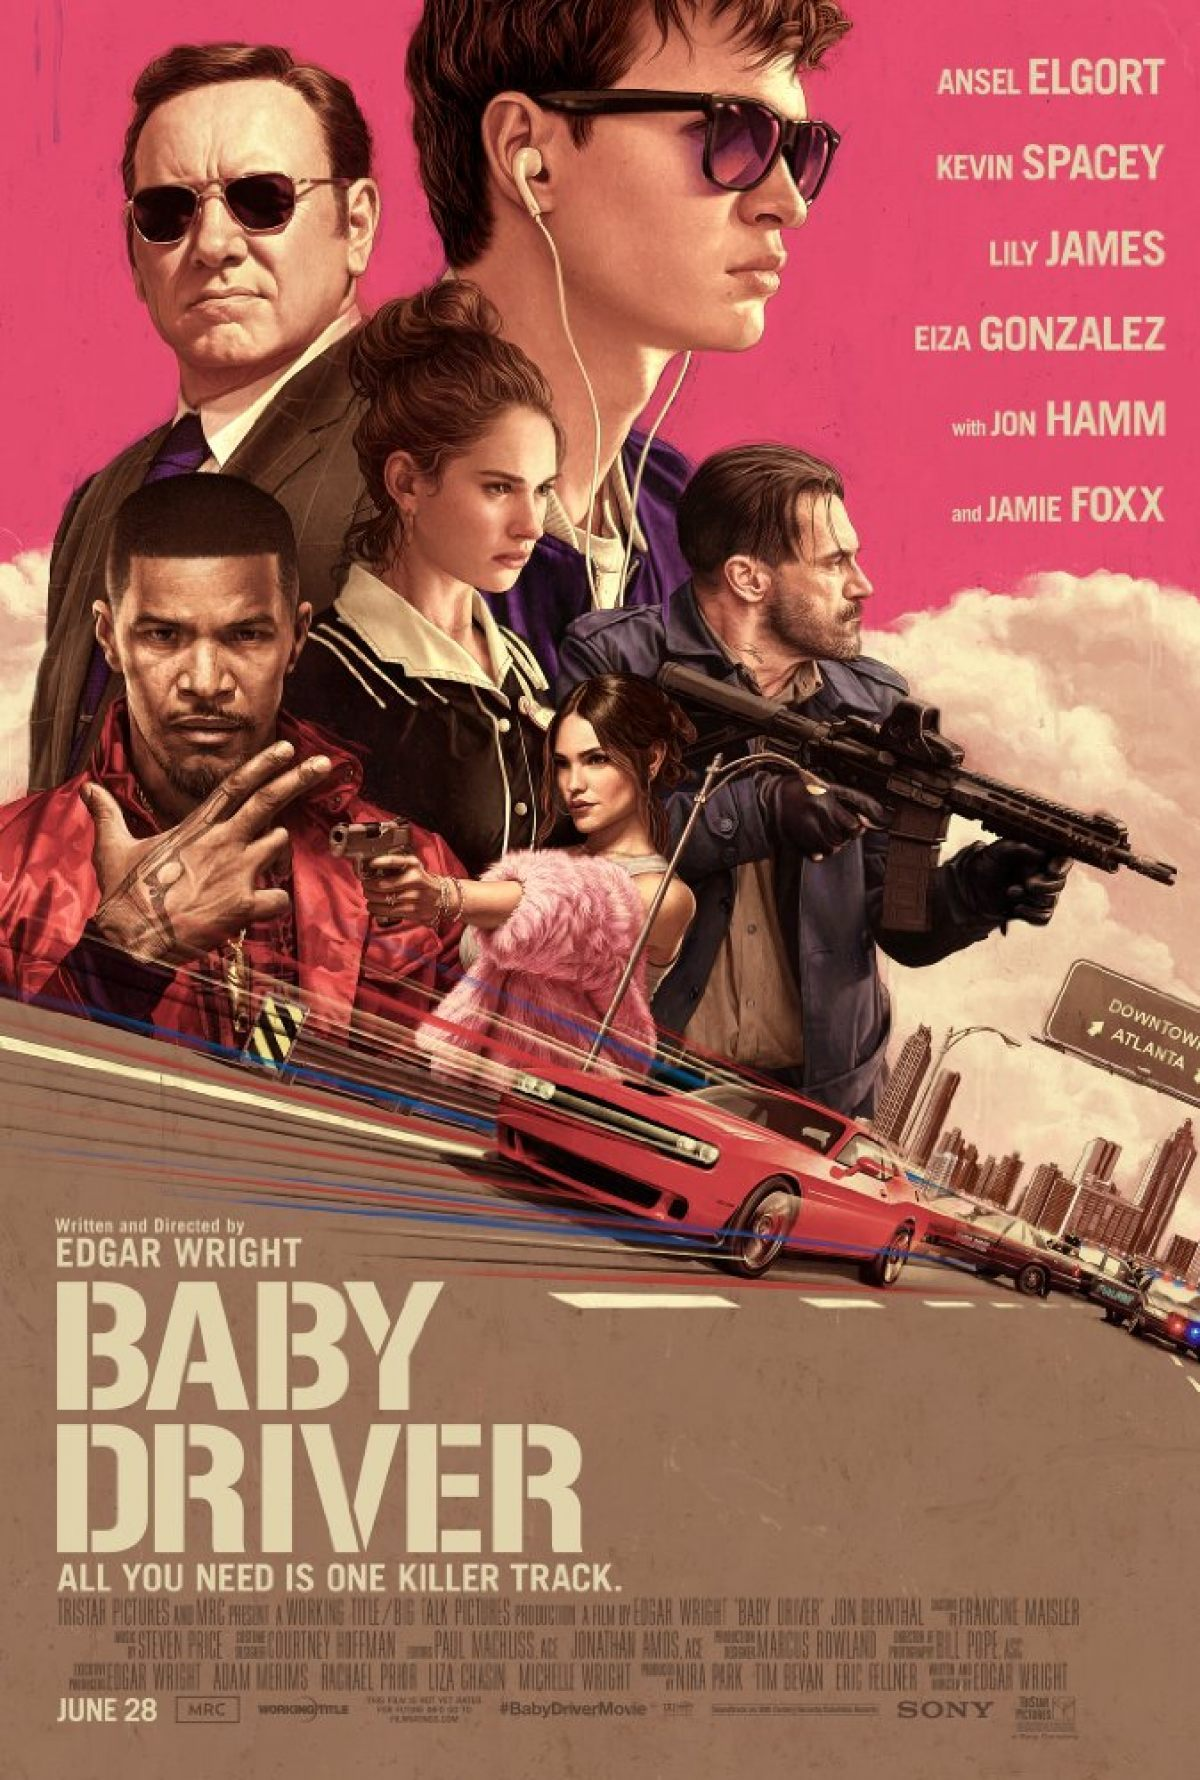 Laura: Baby Driver